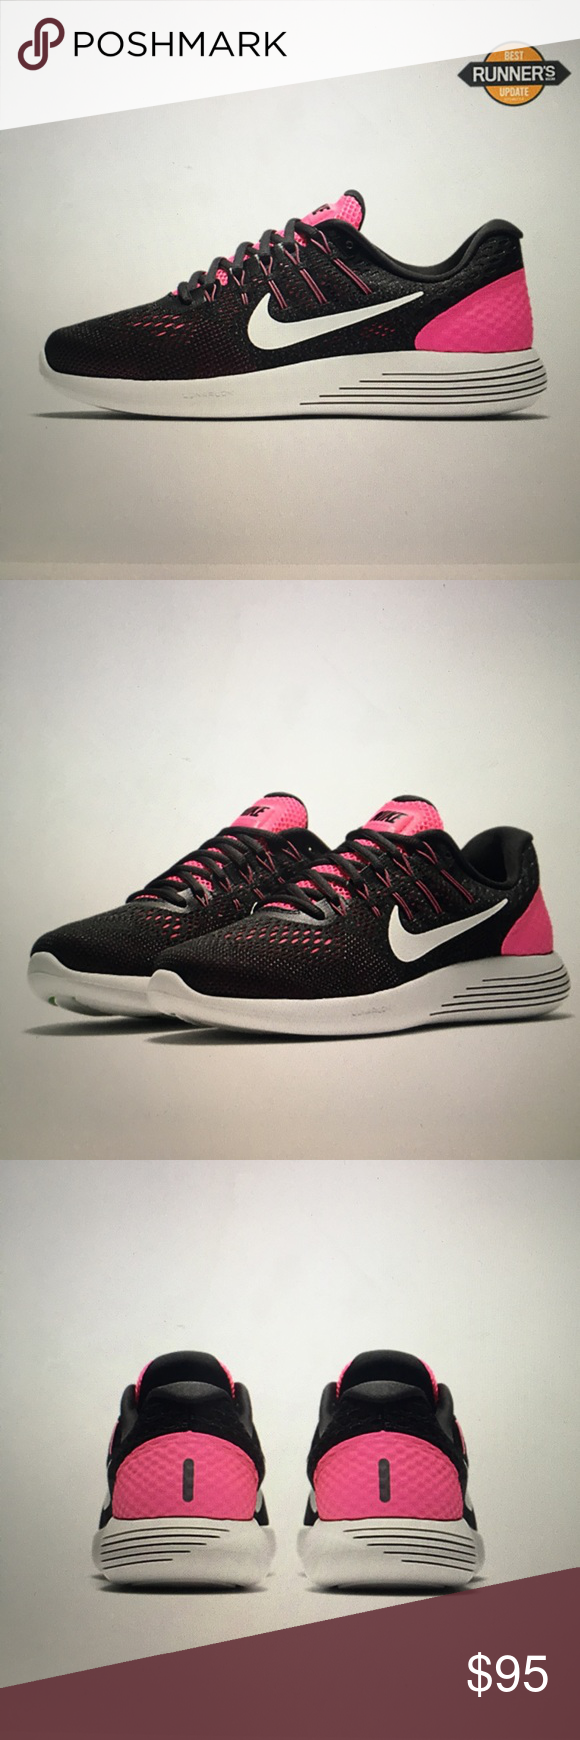 Nike Lunarglide 8 Brand new still in box. Women's sizing. Black and hot pink Nike Shoes